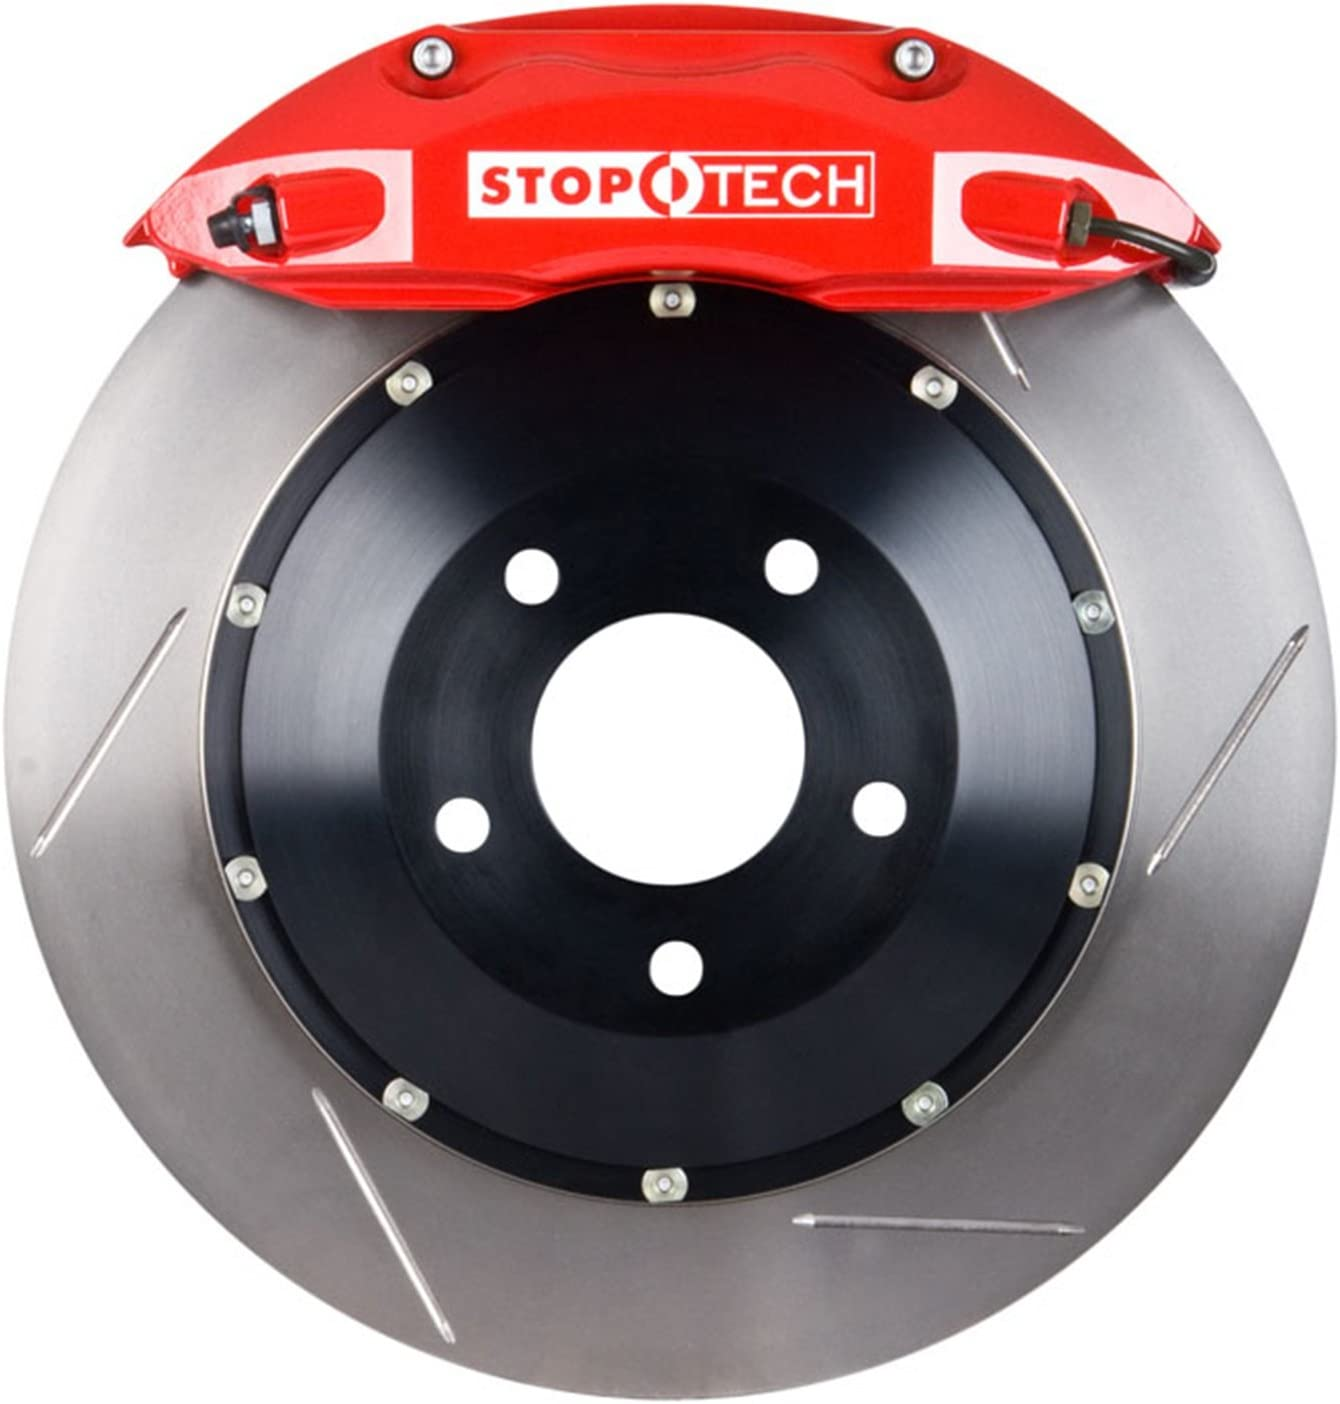 StopTech 83.262.4600.71 Brake Latest item Front discount Rotor